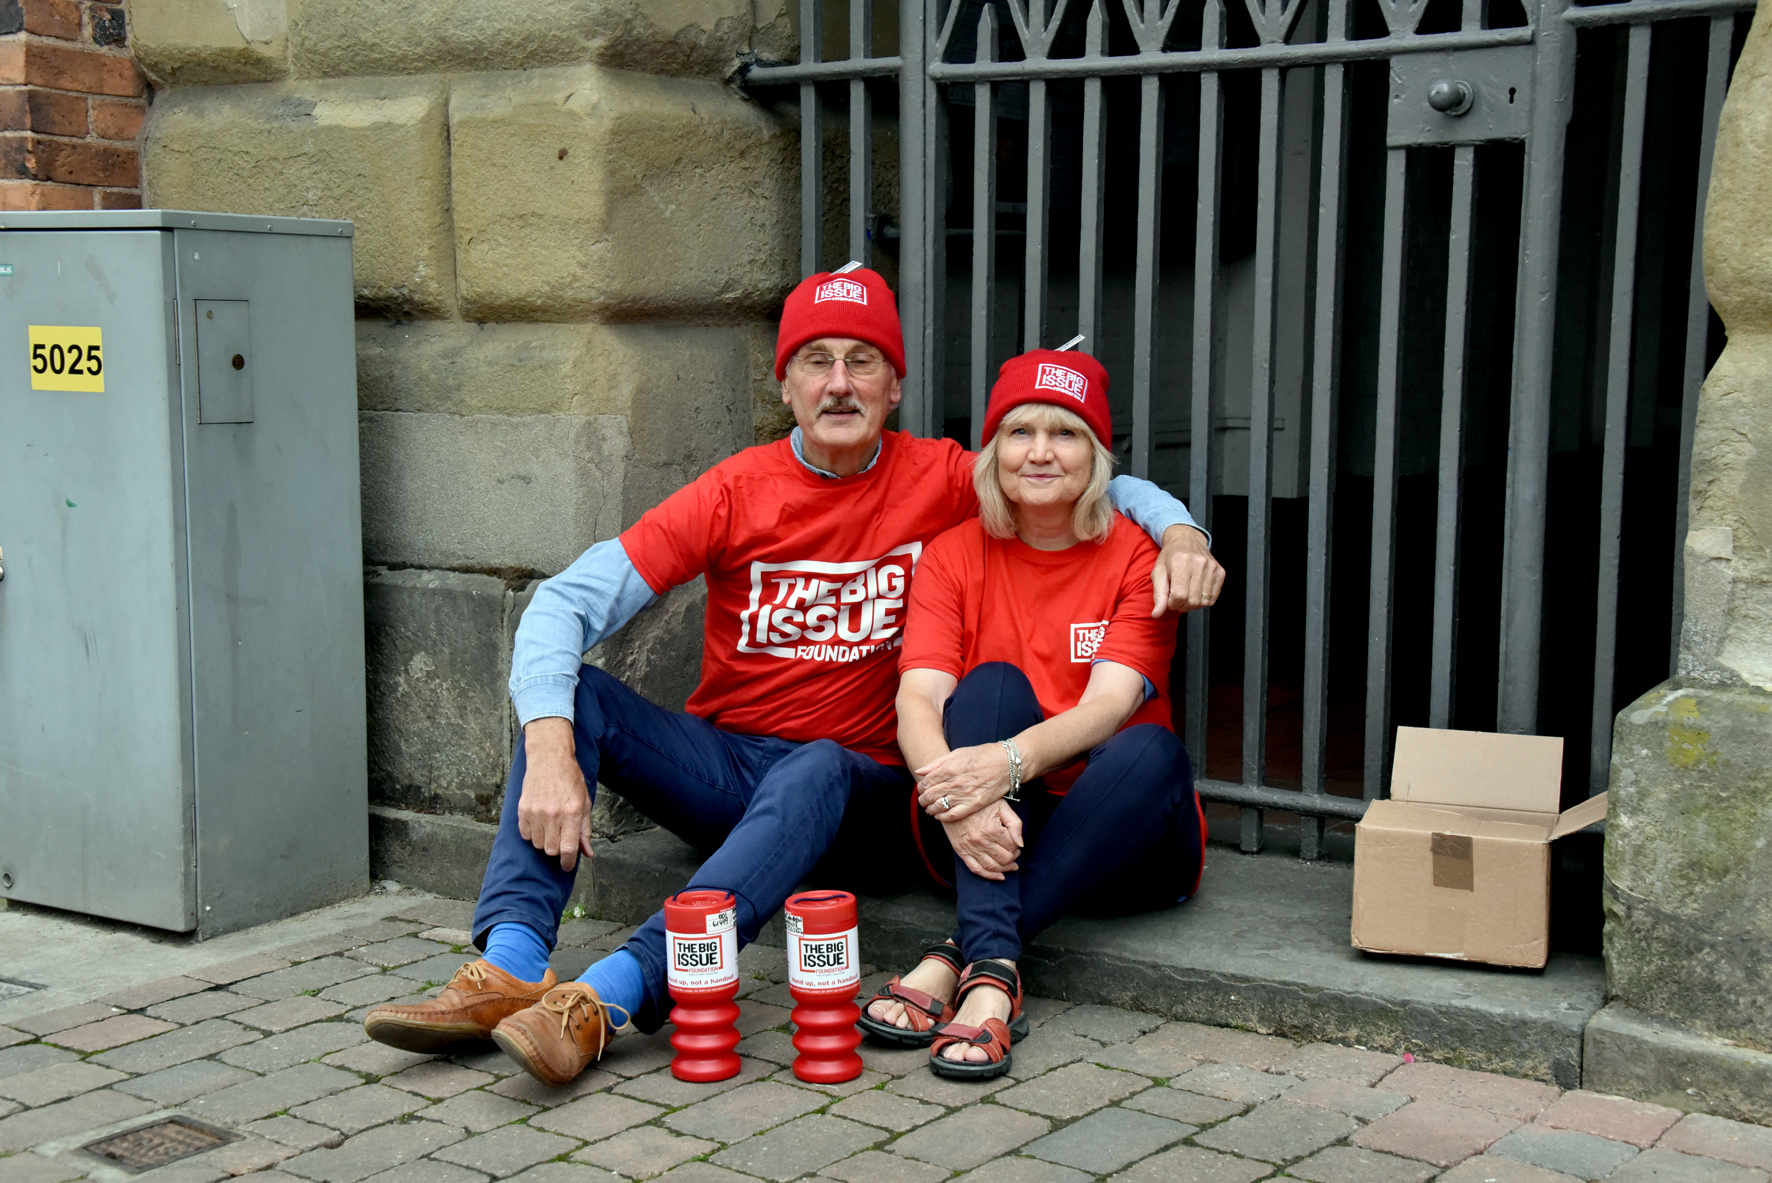 Peter and Sue Hayden are taking part in the Sleepout. PIC: Colin Hill